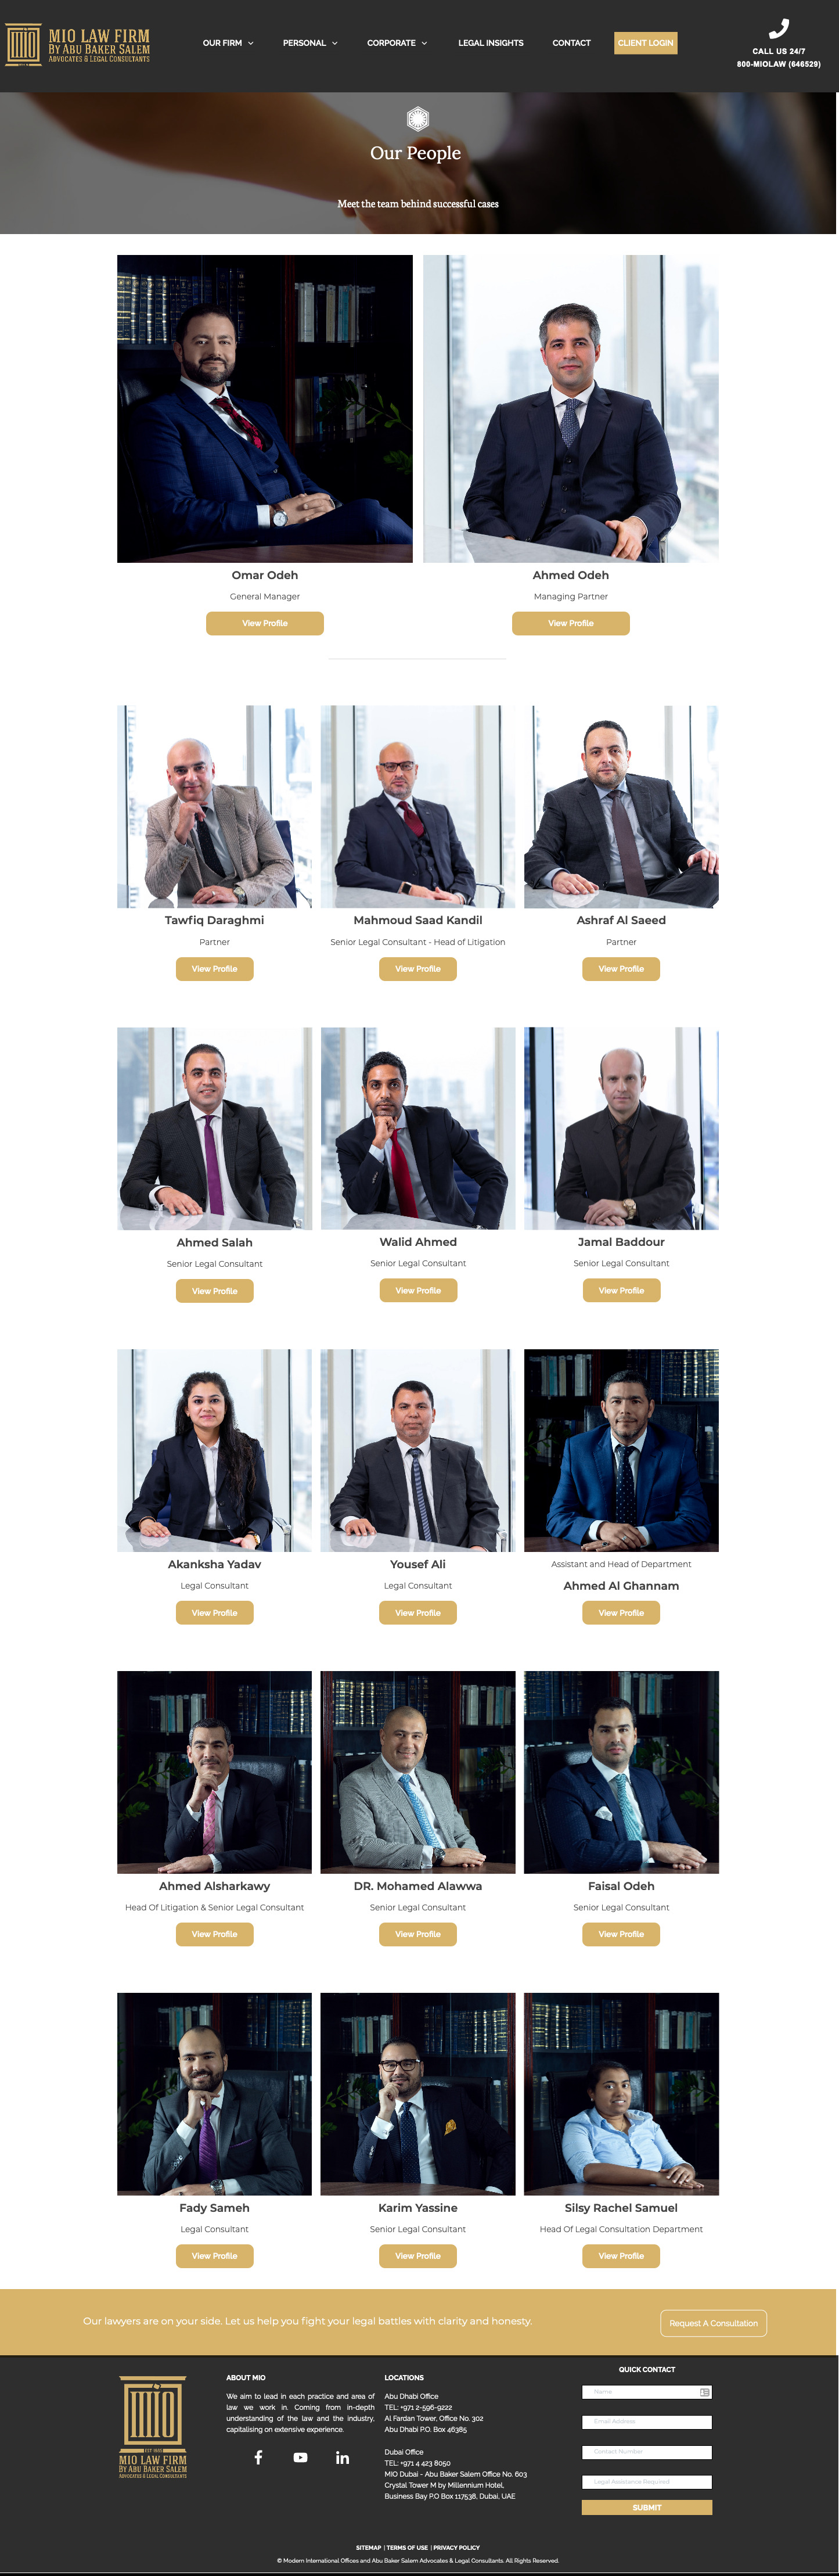 v7 digital client MIO law firm